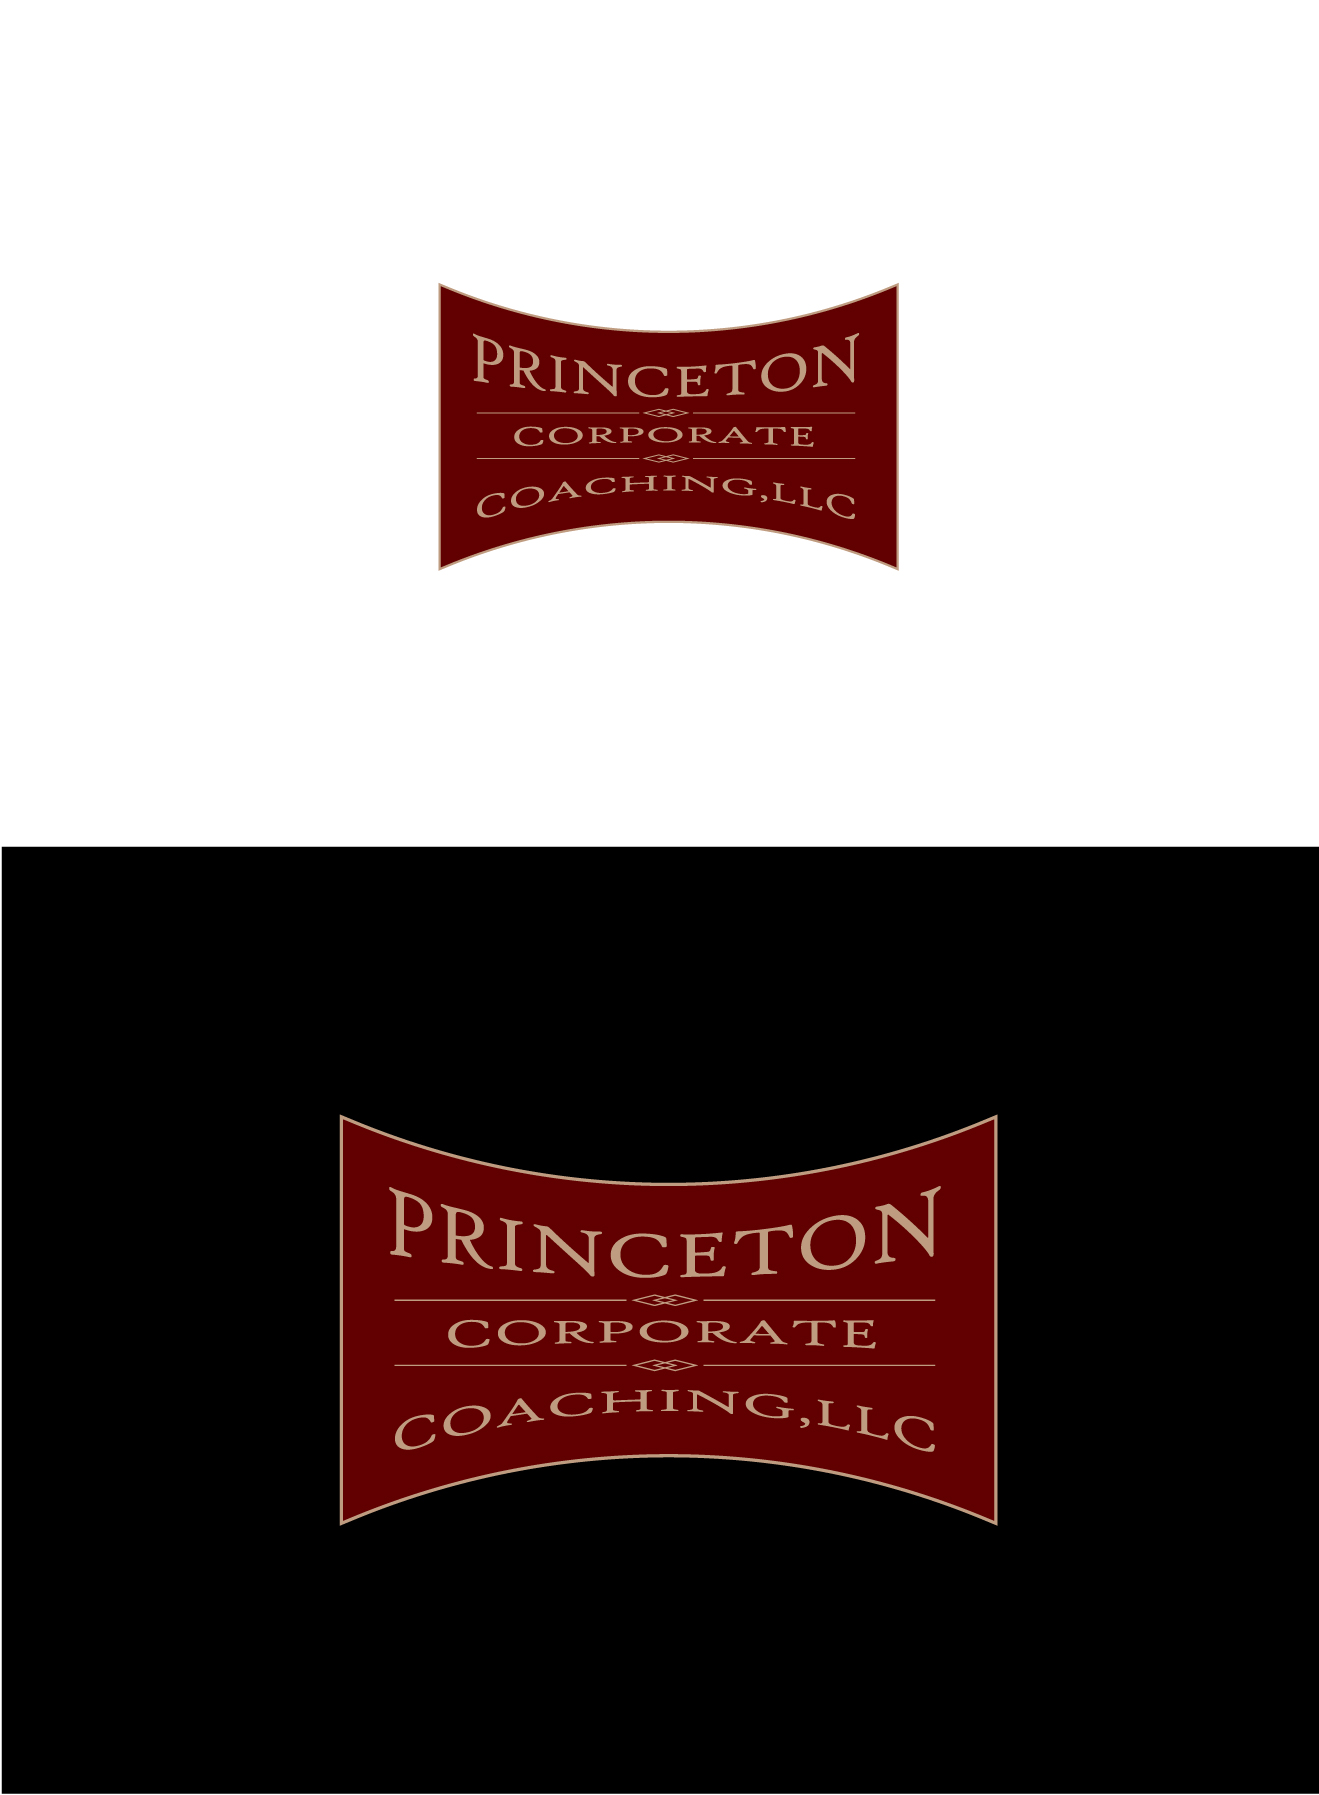 Logo Design by Wilfredo Mendoza - Entry No. 214 in the Logo Design Contest Unique Logo Design Wanted for Princeton Corporate Coaching, LLC.